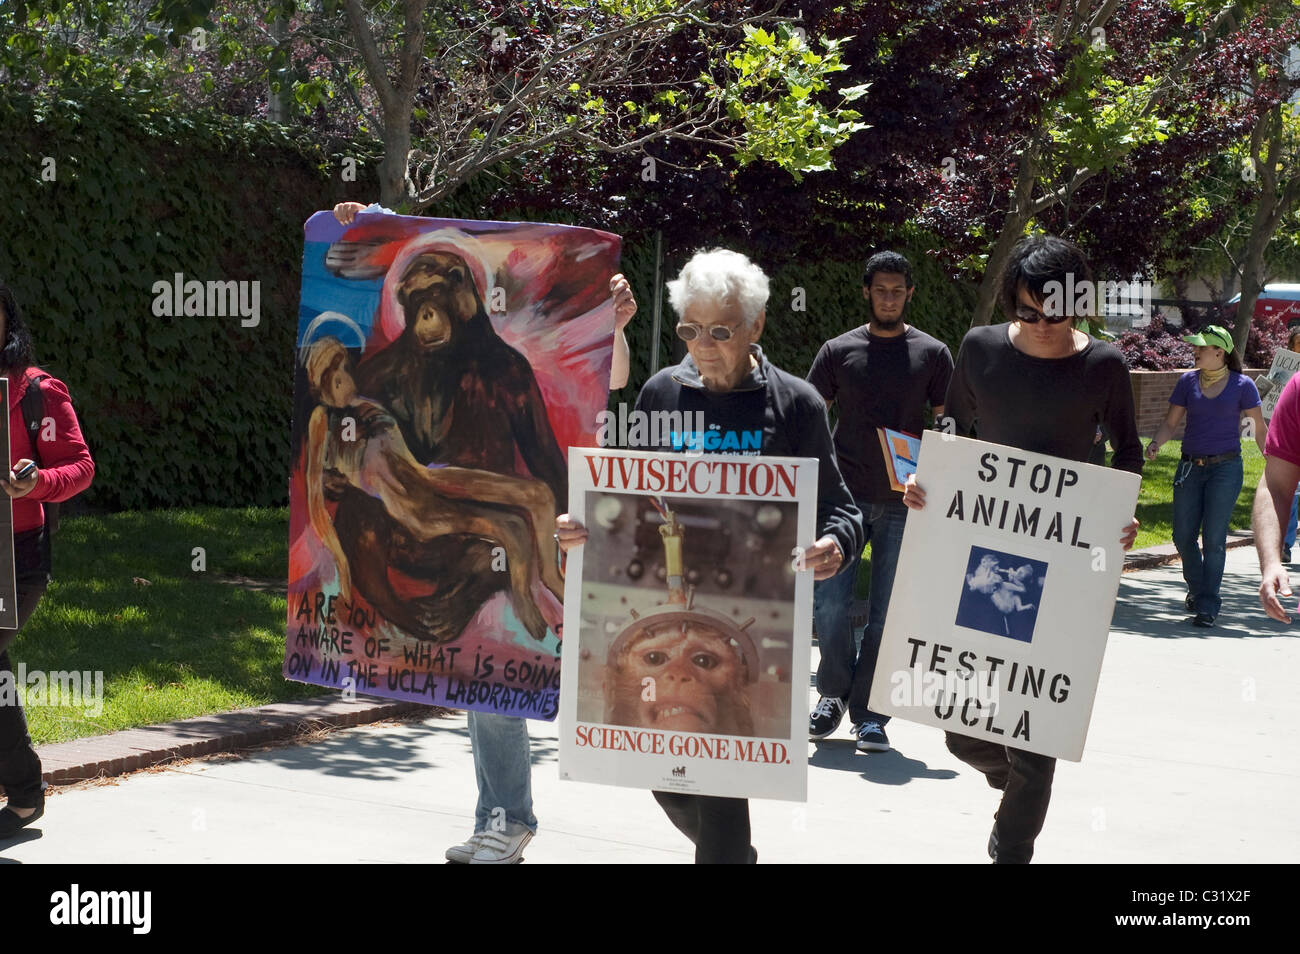 Animal Rights Protesters of Various Ages Carrying Anti-Vivisection Signs at UCLA in Los Angeles, CA - Stock Image